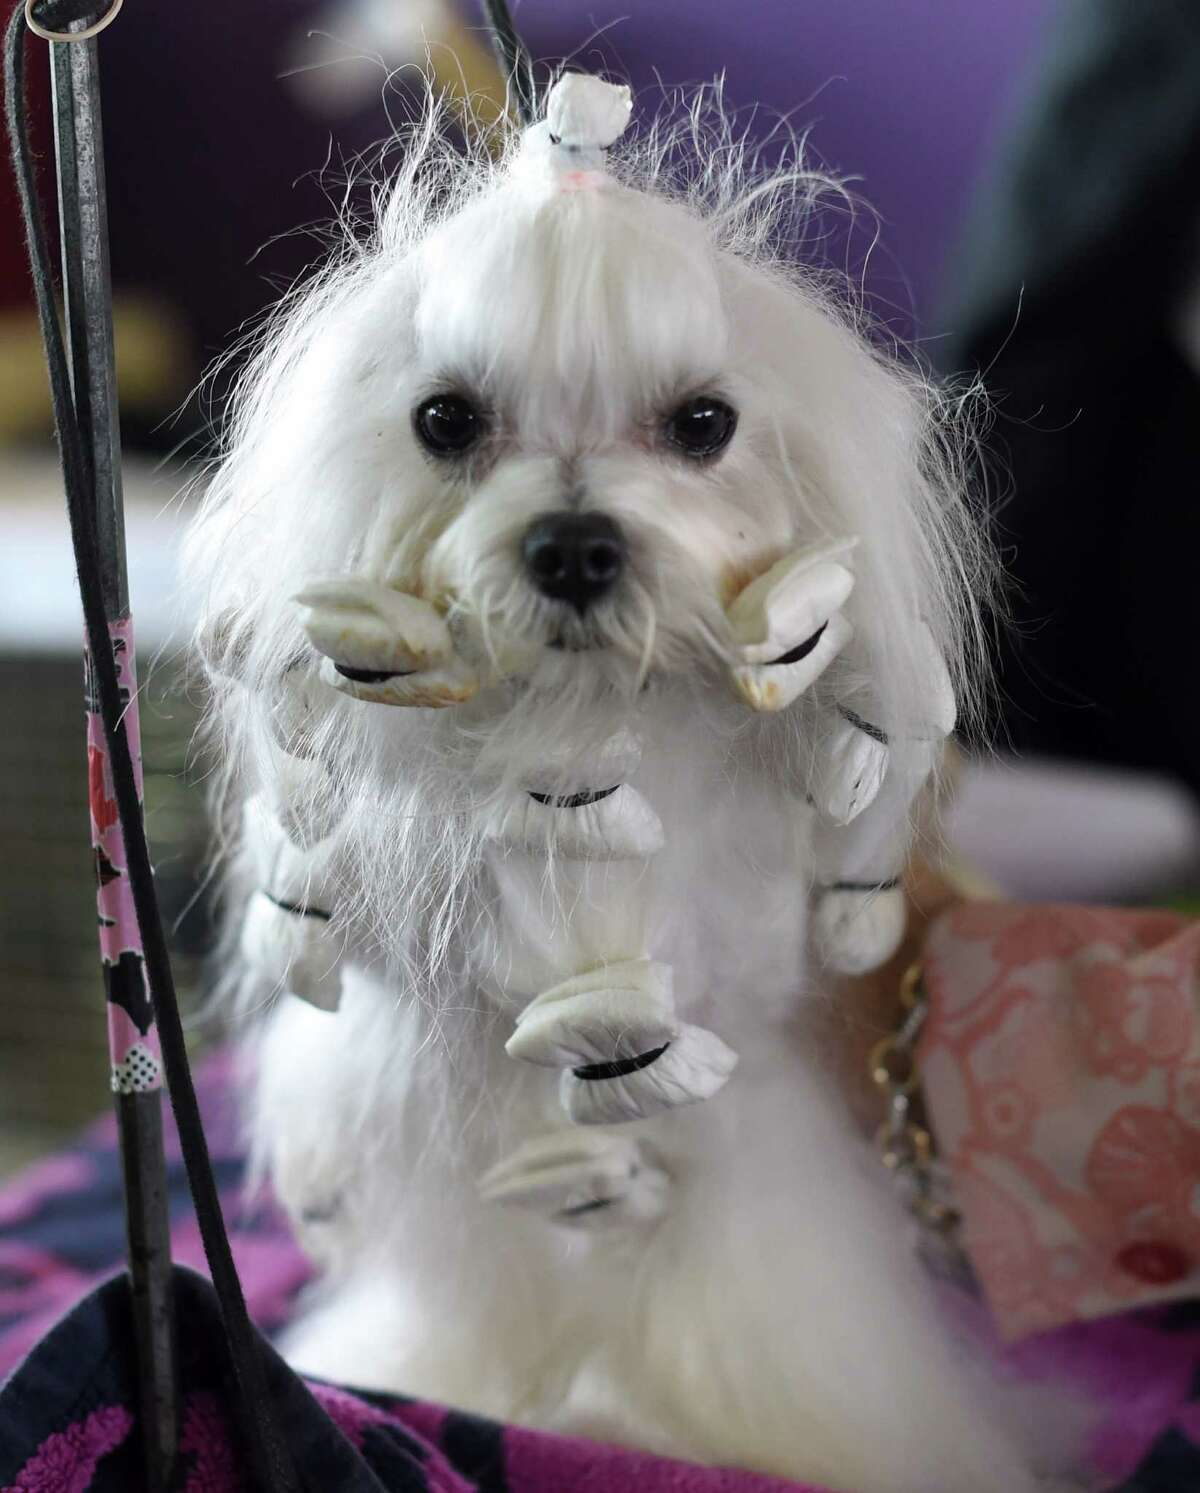 A Maltese in the benching area at Pier 92 and 94 in New York City on the first day of competition at the 139th Annual Westminster Kennel Club Dog Show.